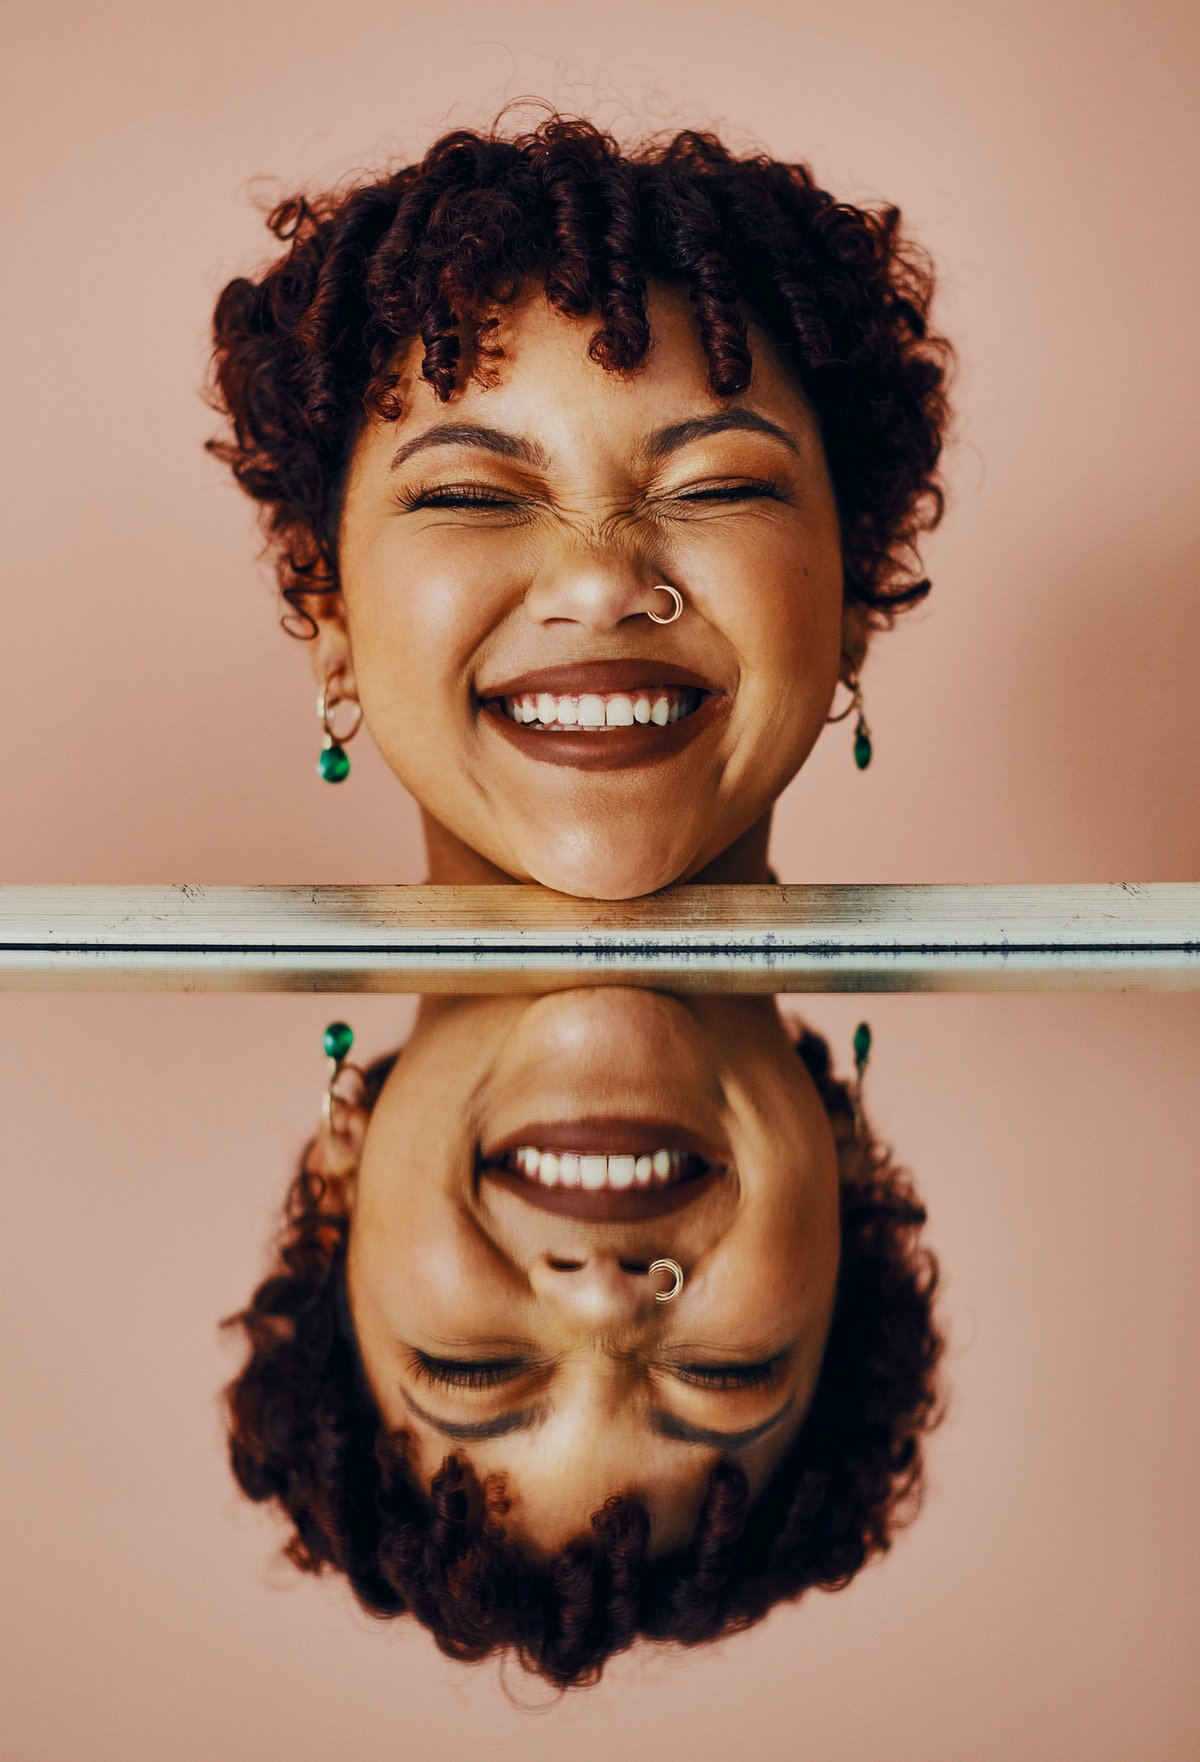 Young woman smiling next to her reflection because of her best July 2021 monthly horoscope.